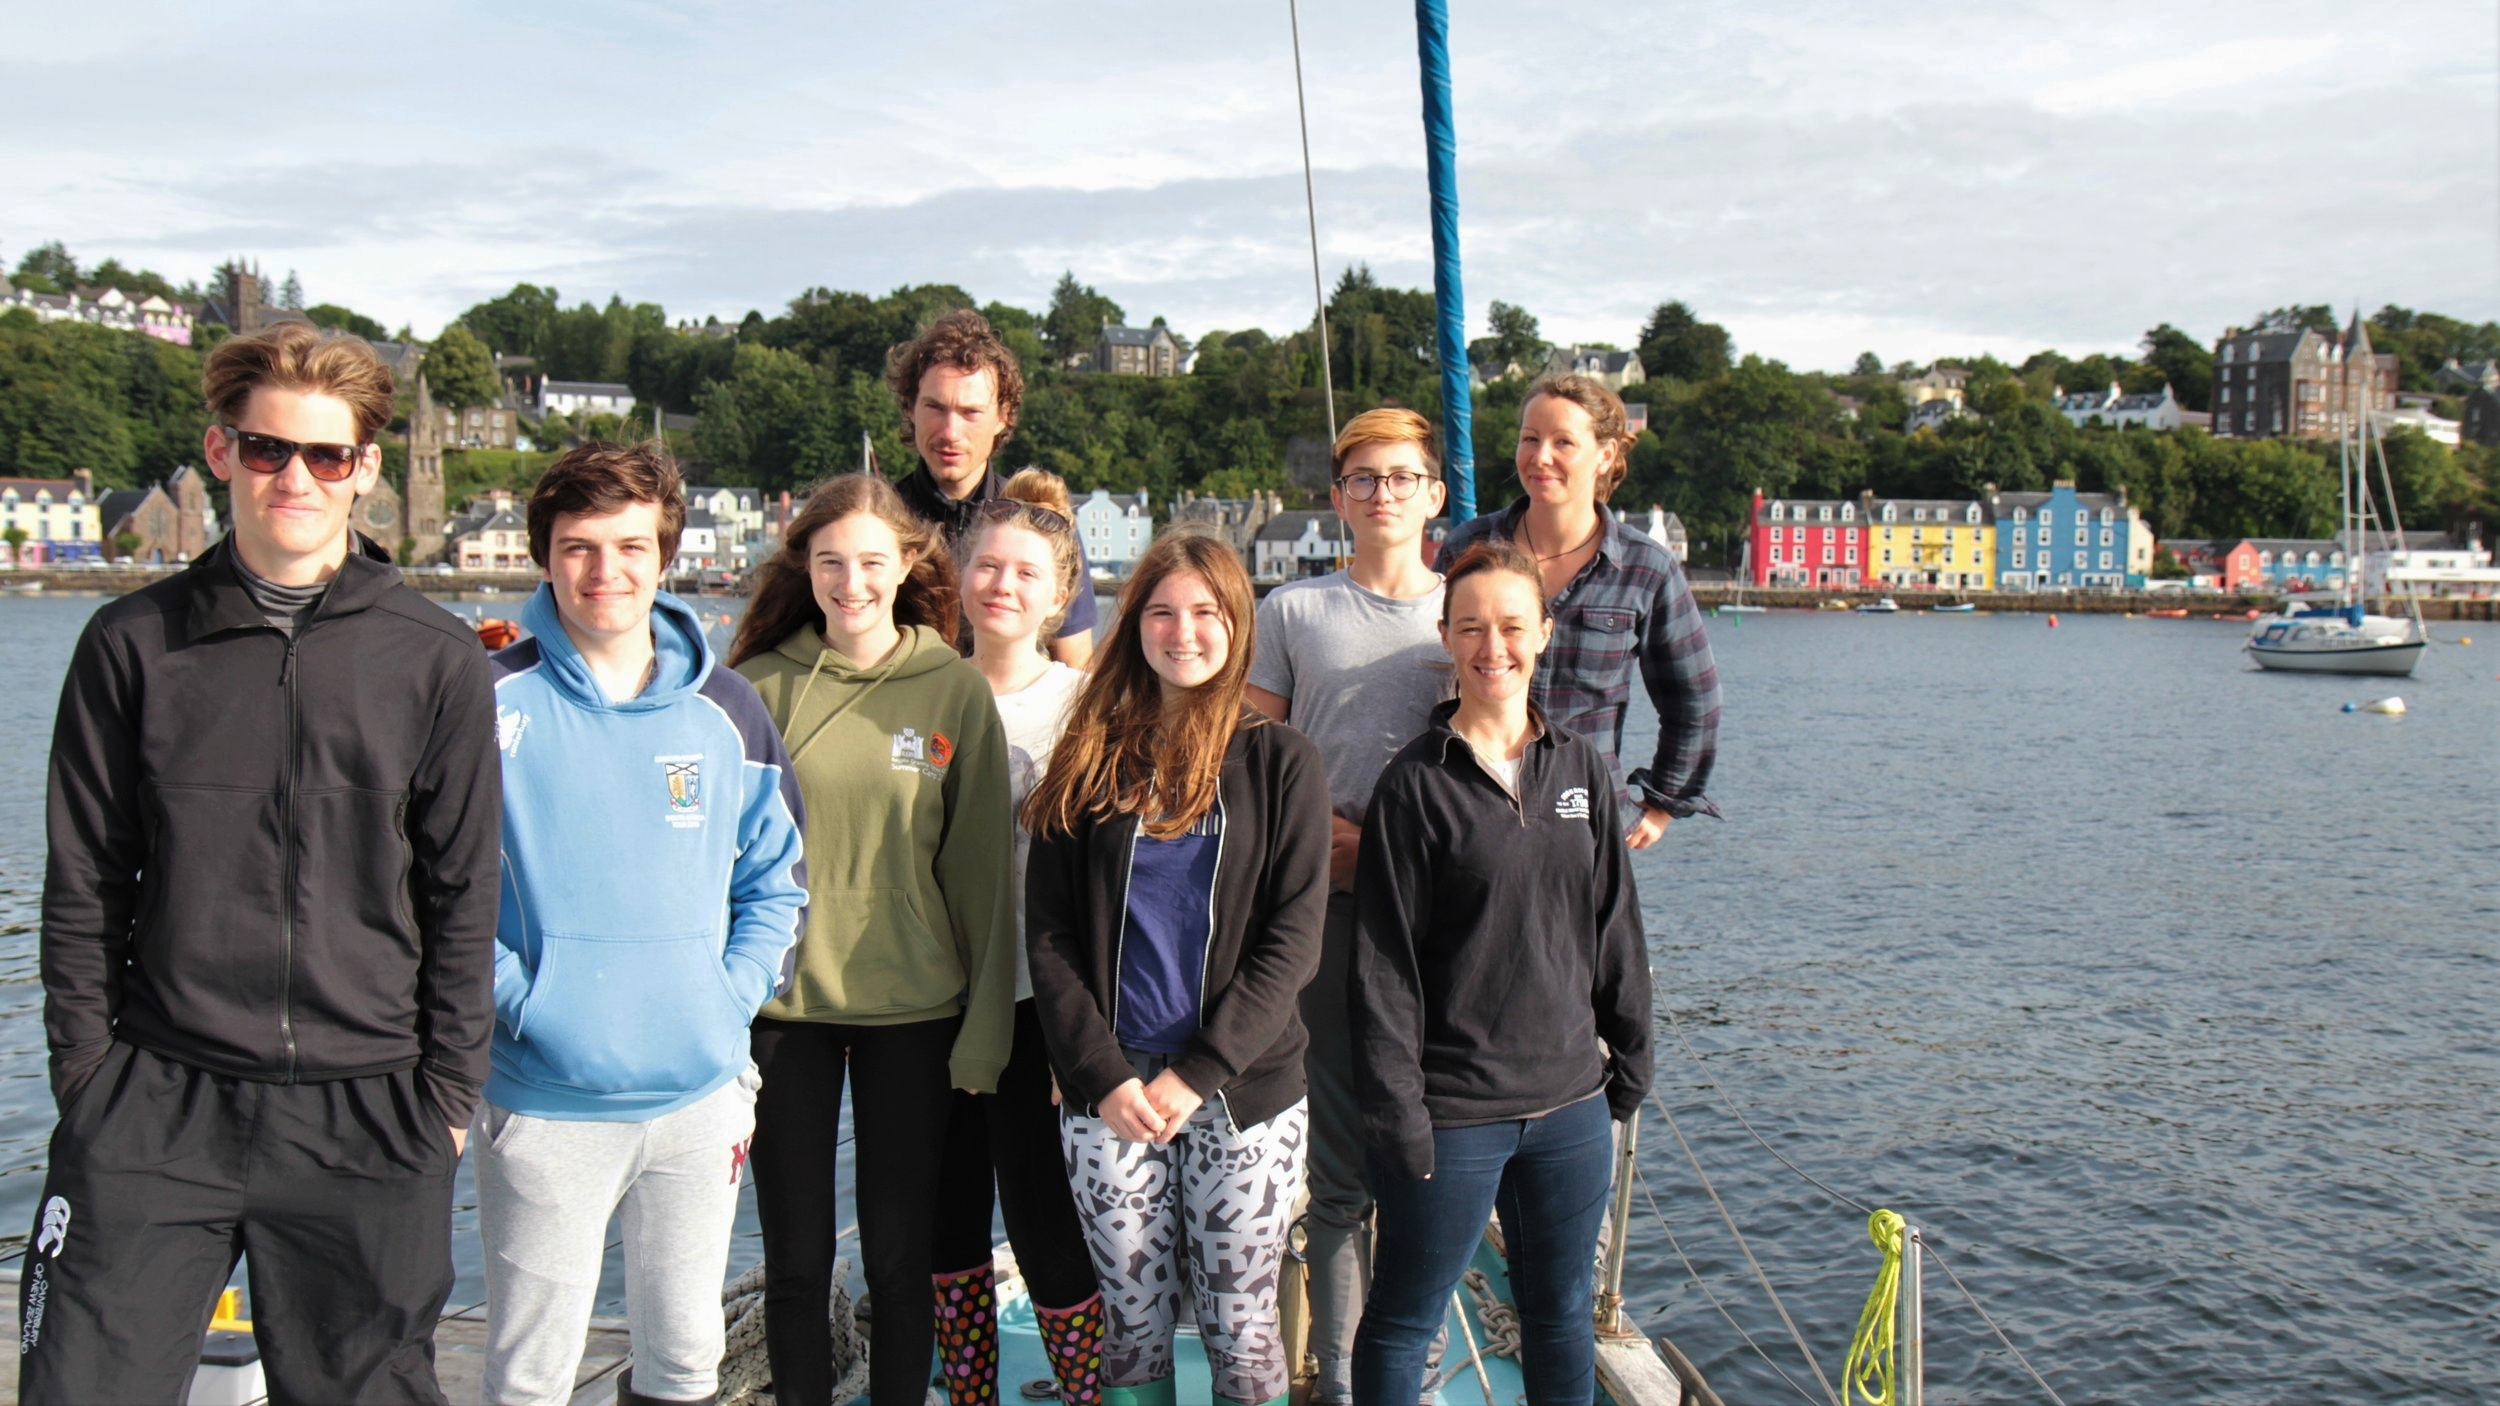 The team in Tobermory Bay (minus Pippa who is taking the photo!)